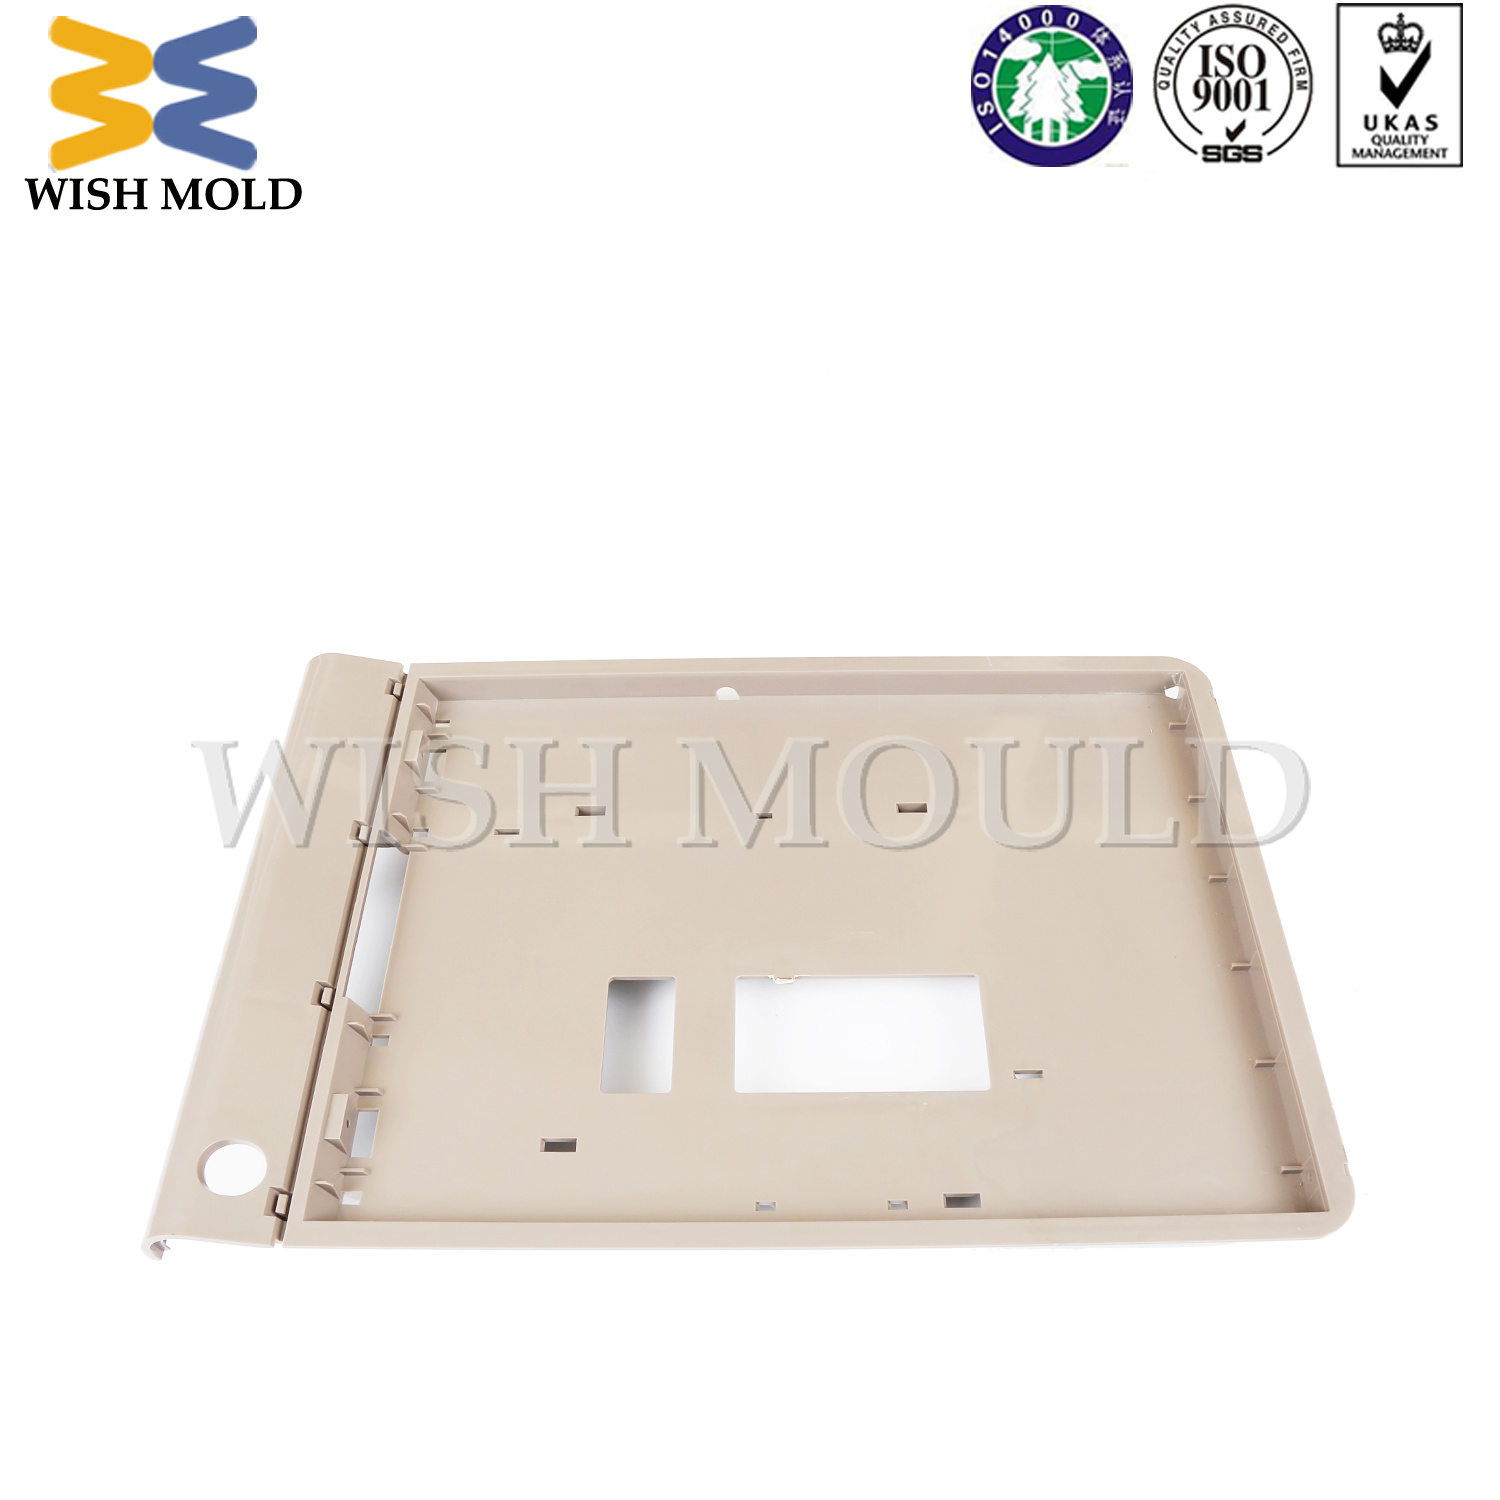 China Plastic Defects Injection Molding Thermoplastics Mold